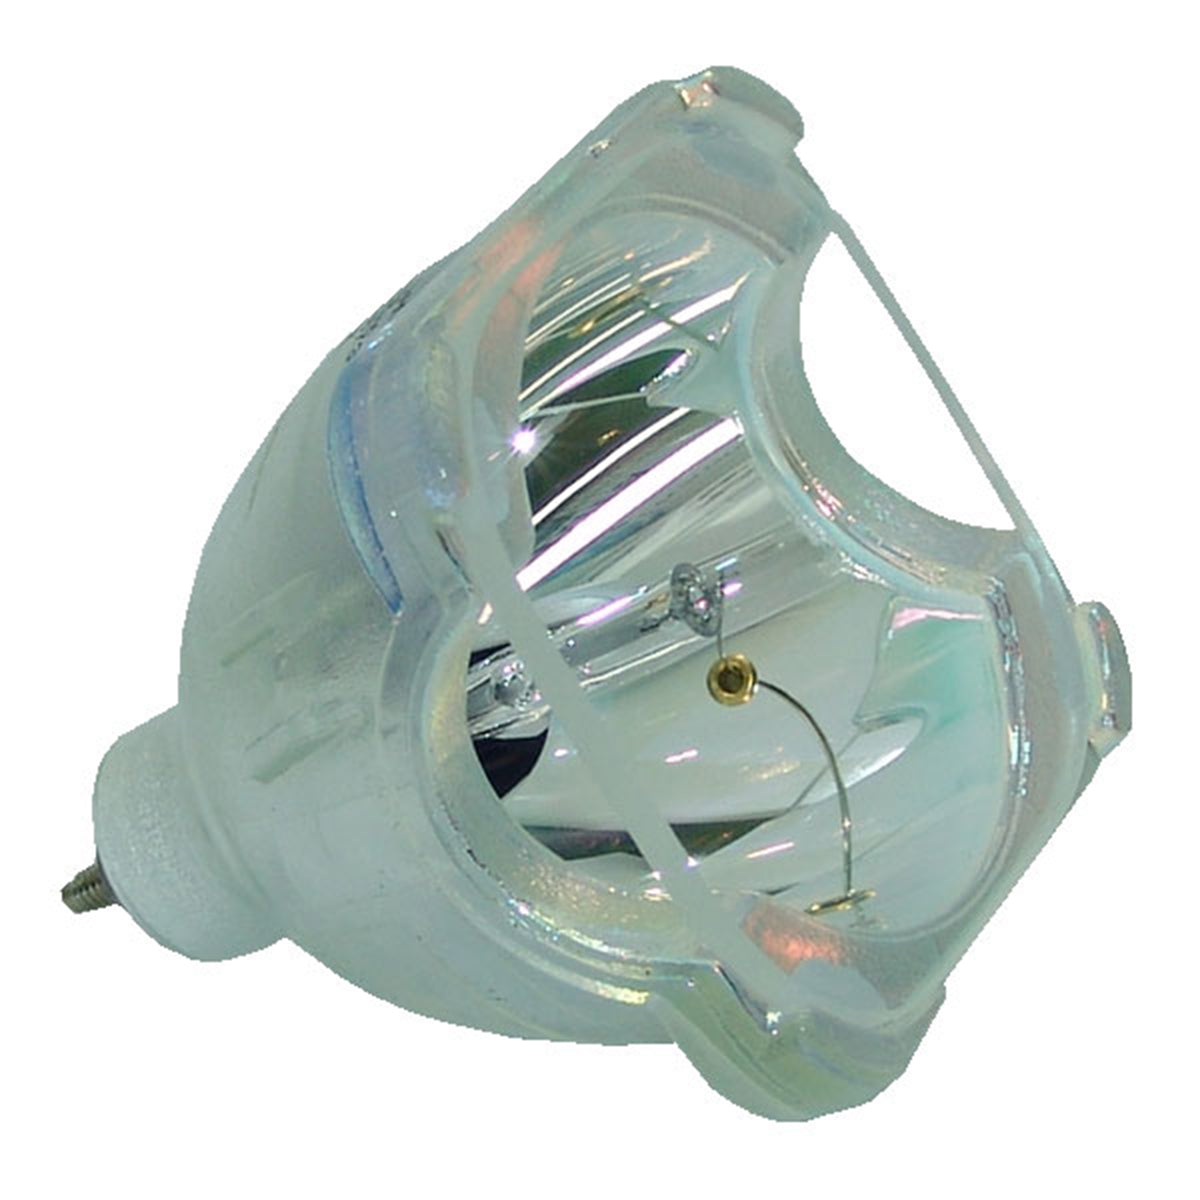 Samsung BP96-01600A Philips Bare TV Lamp